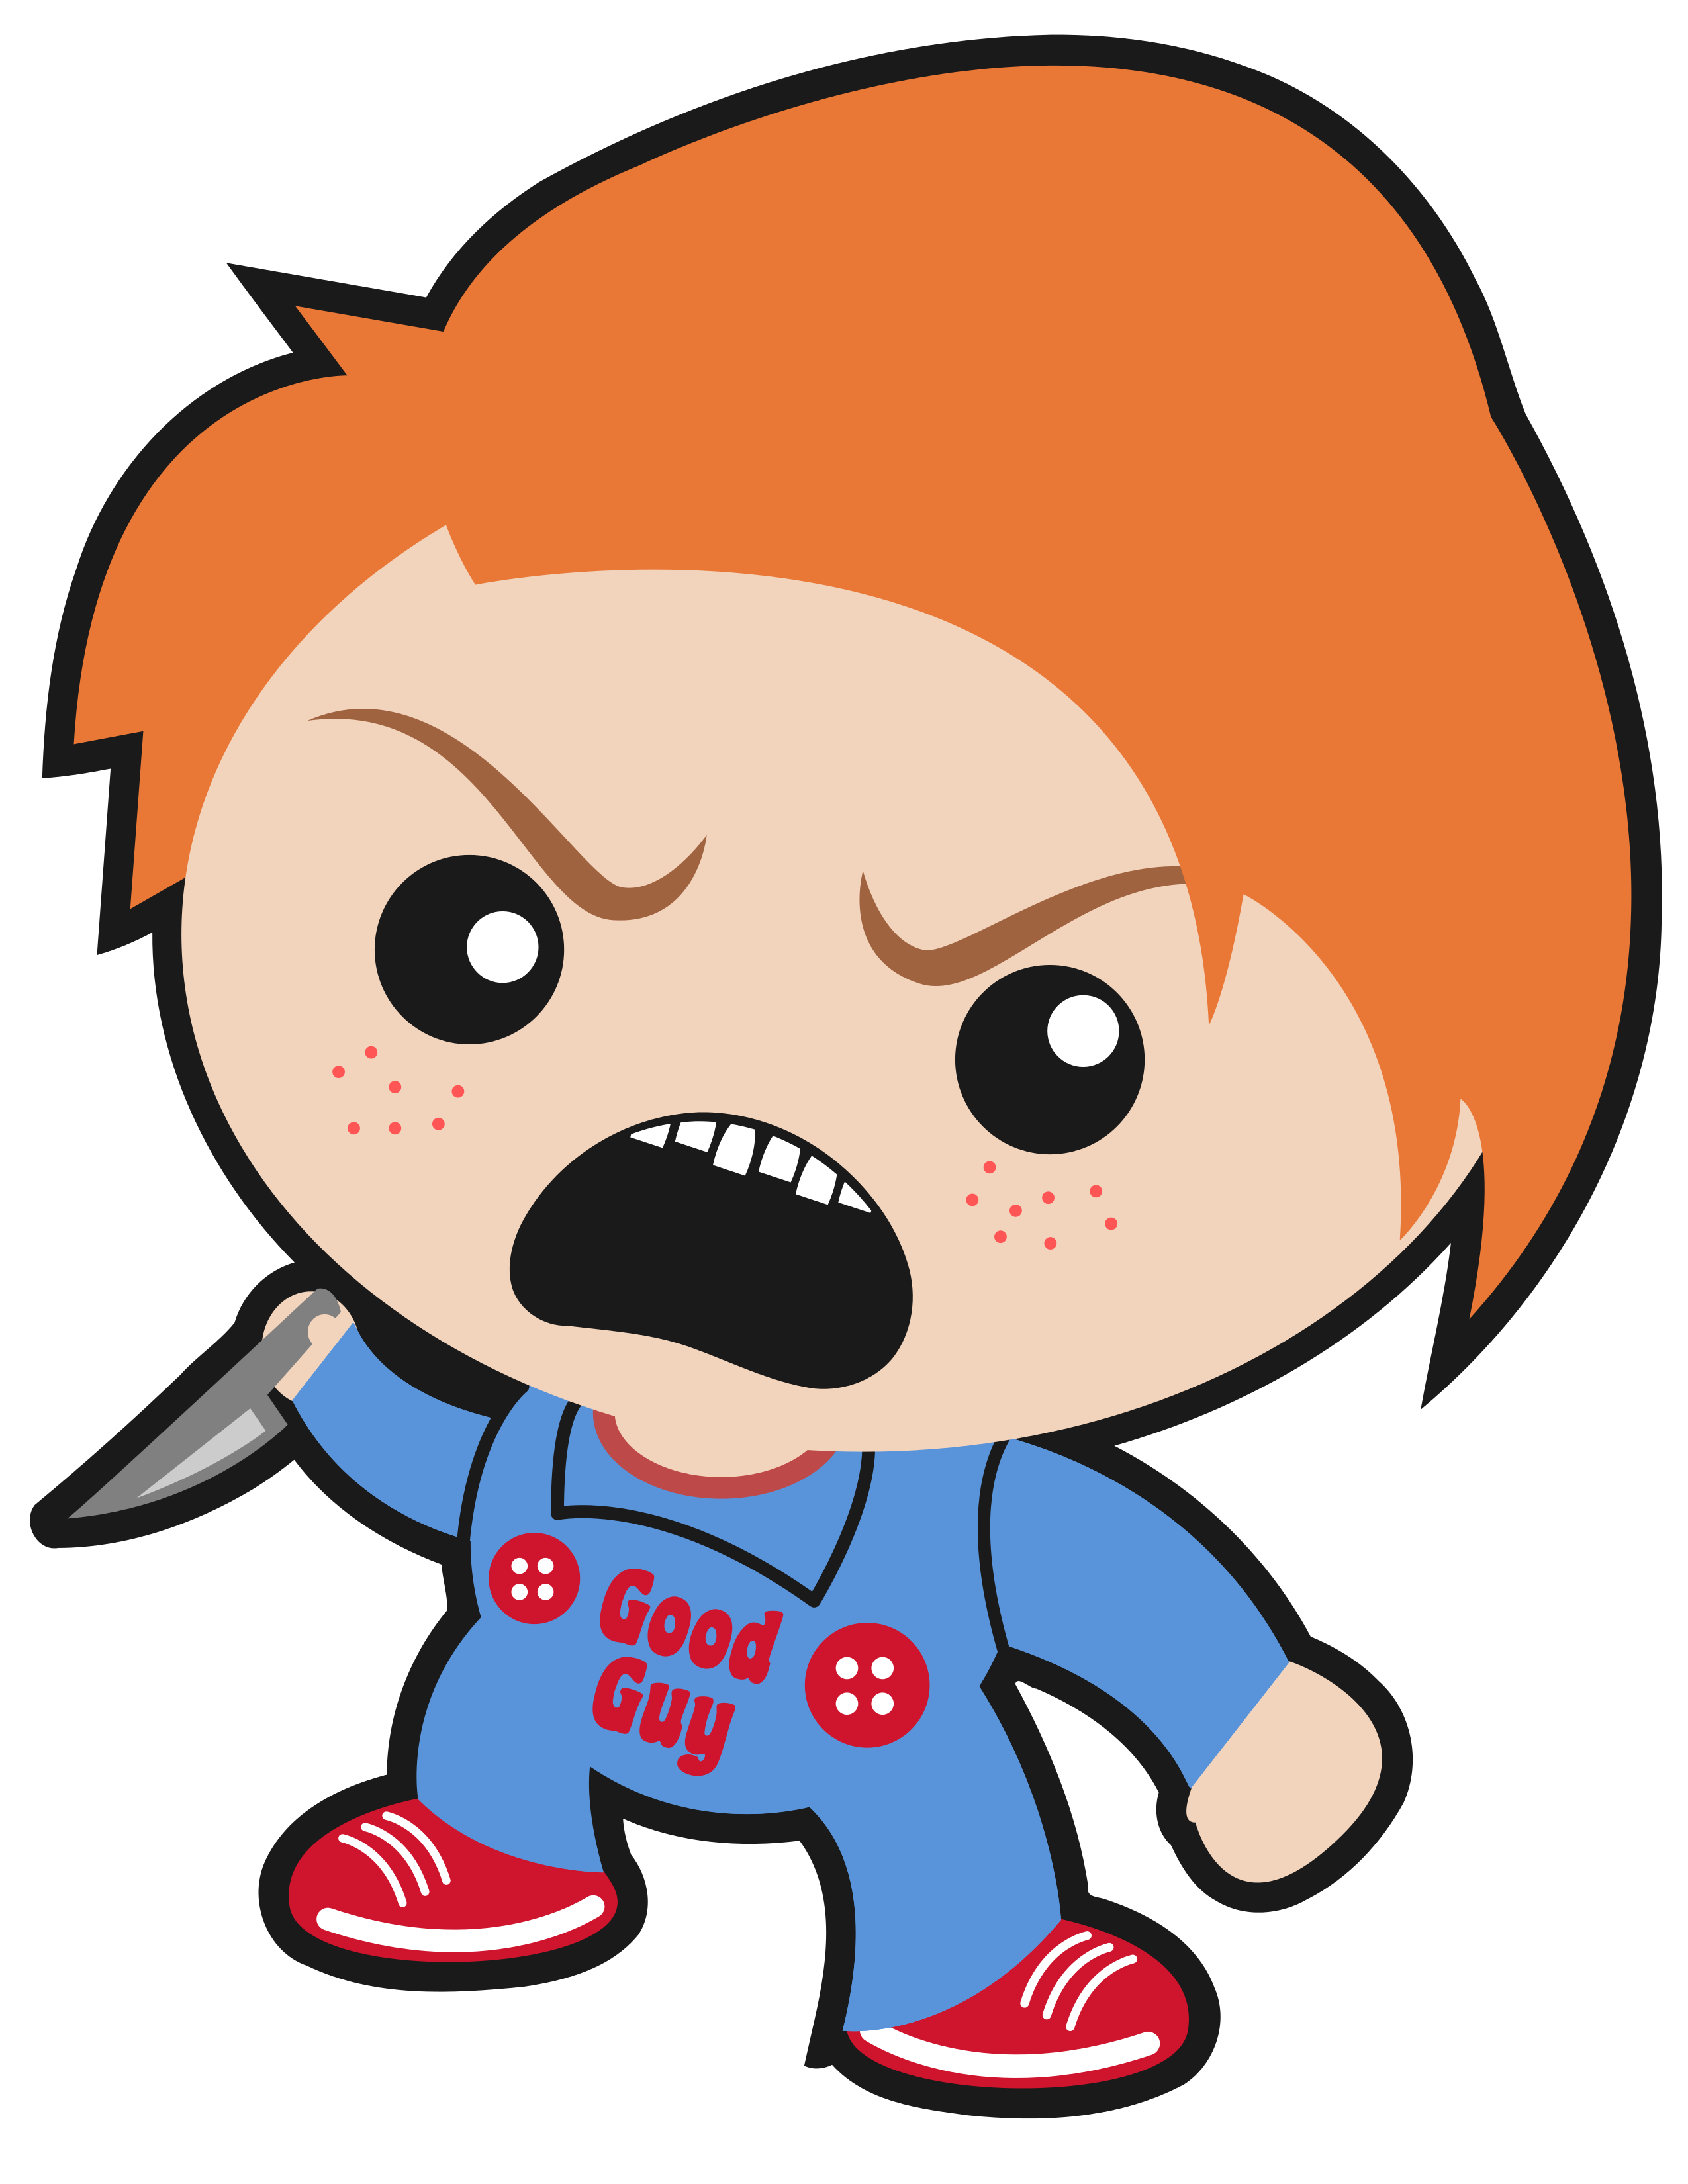 Movie clipart treat. Halloween chucky dracula freddy